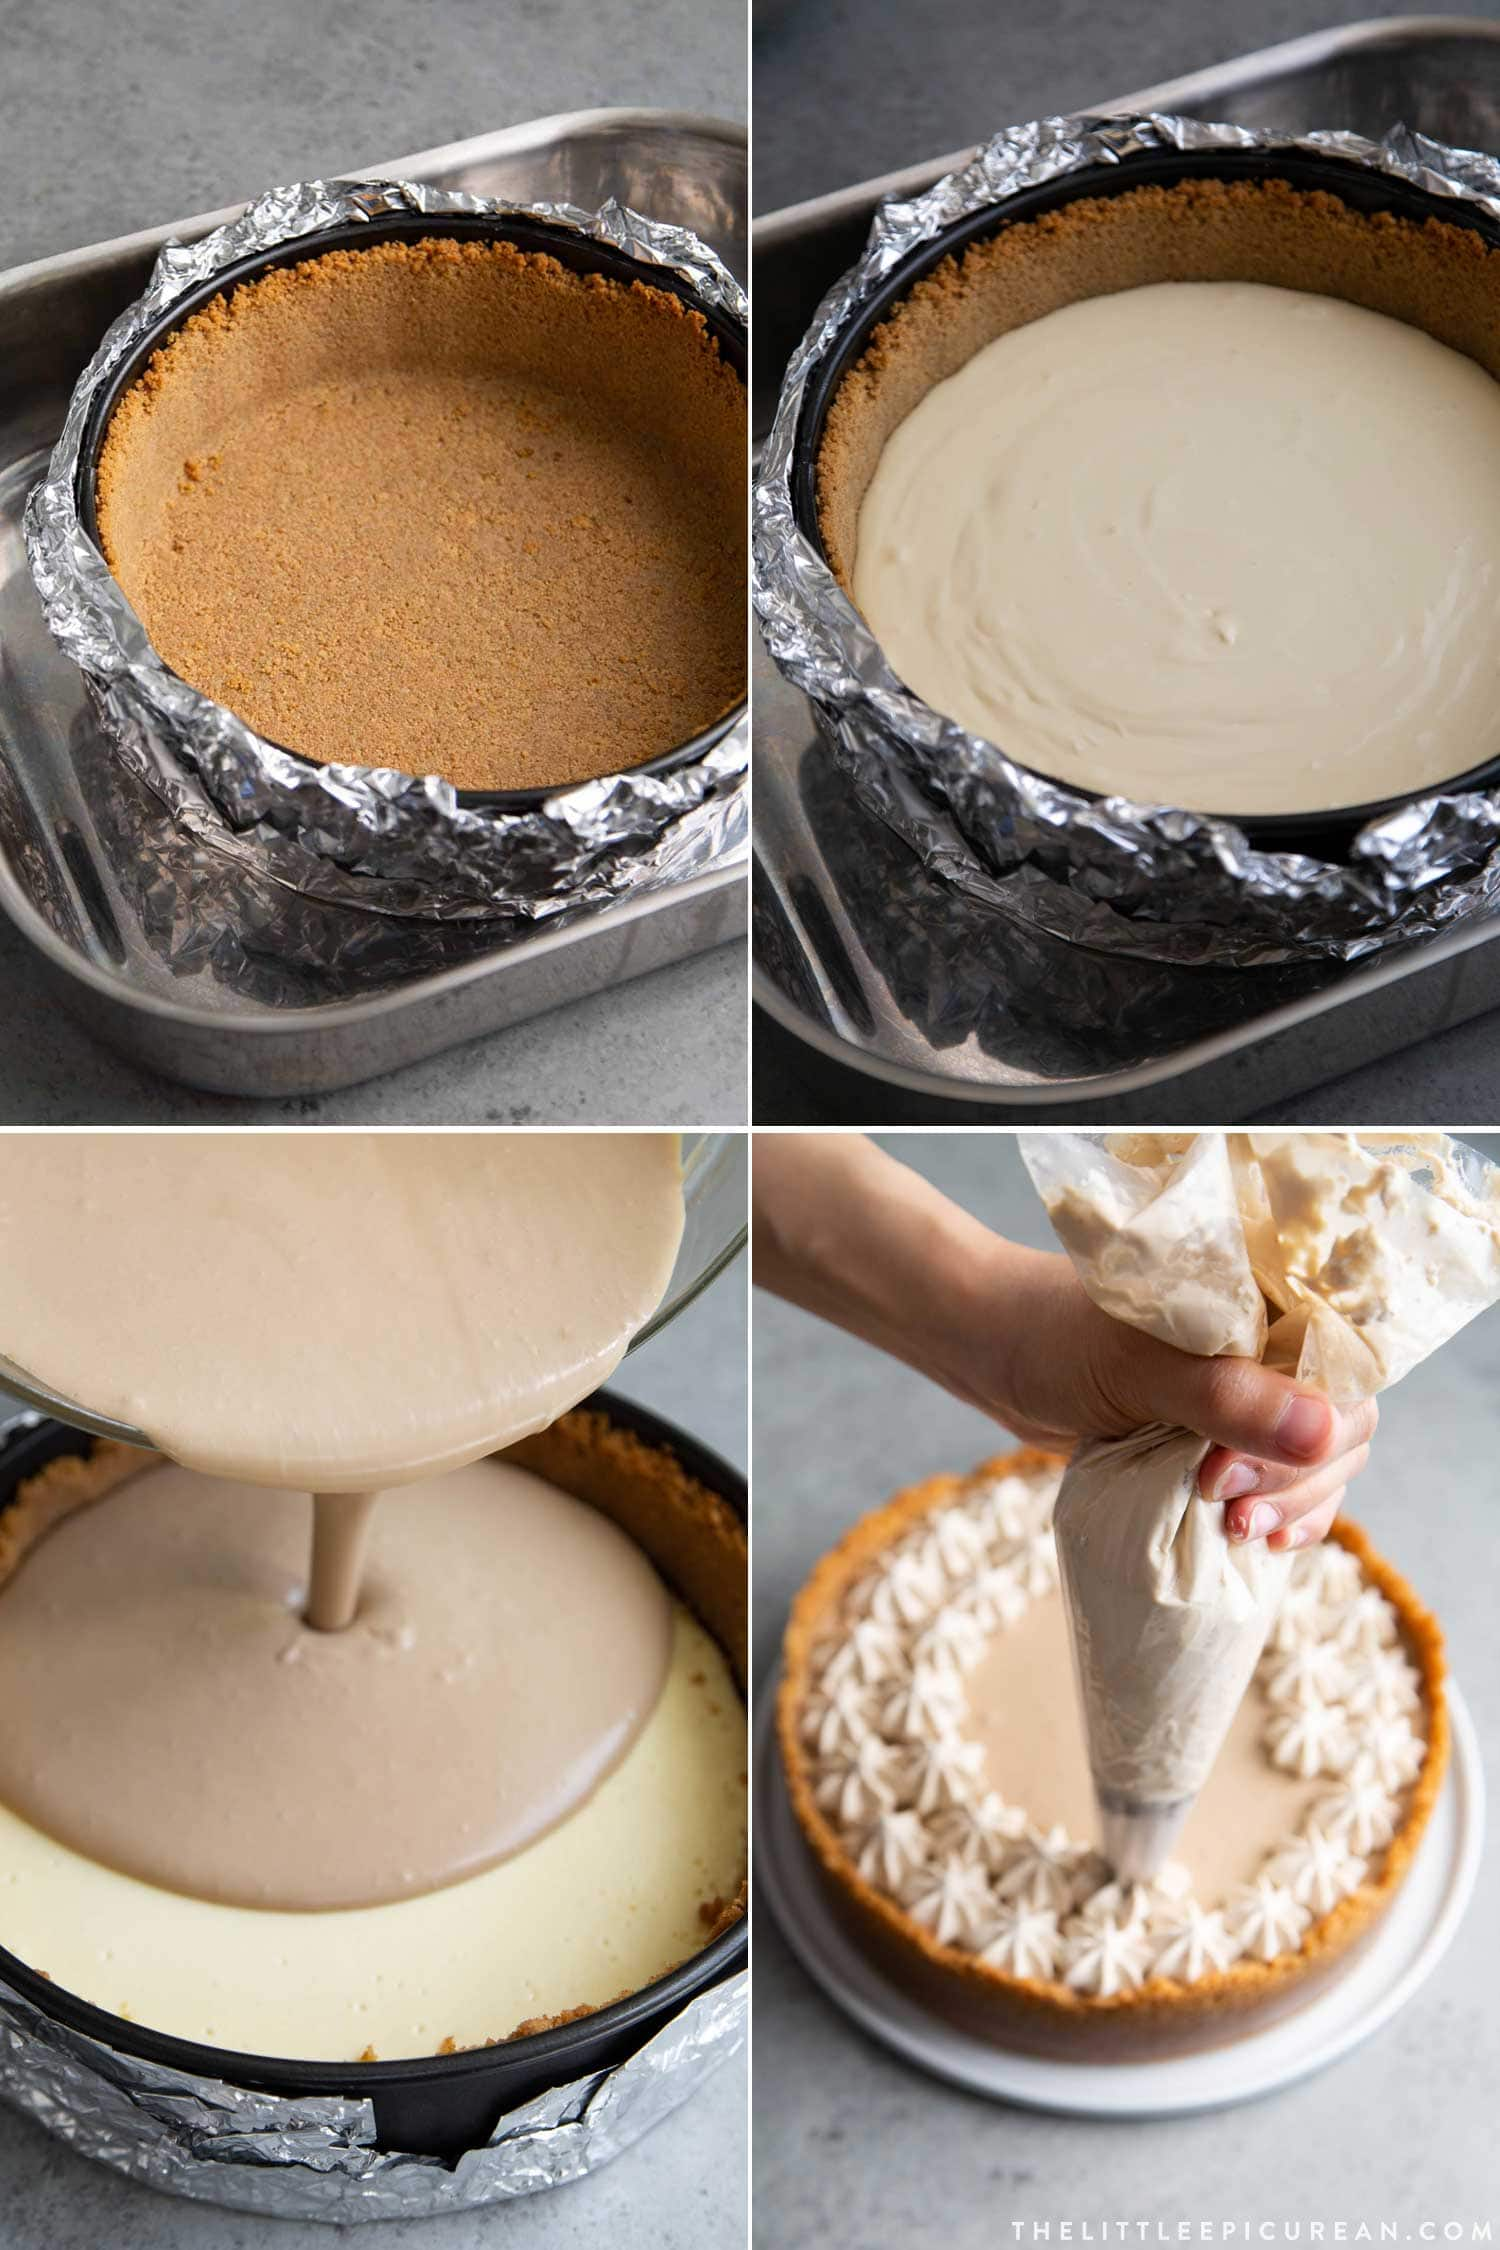 Coffee Mousse Cheesecake The Little Epicurean